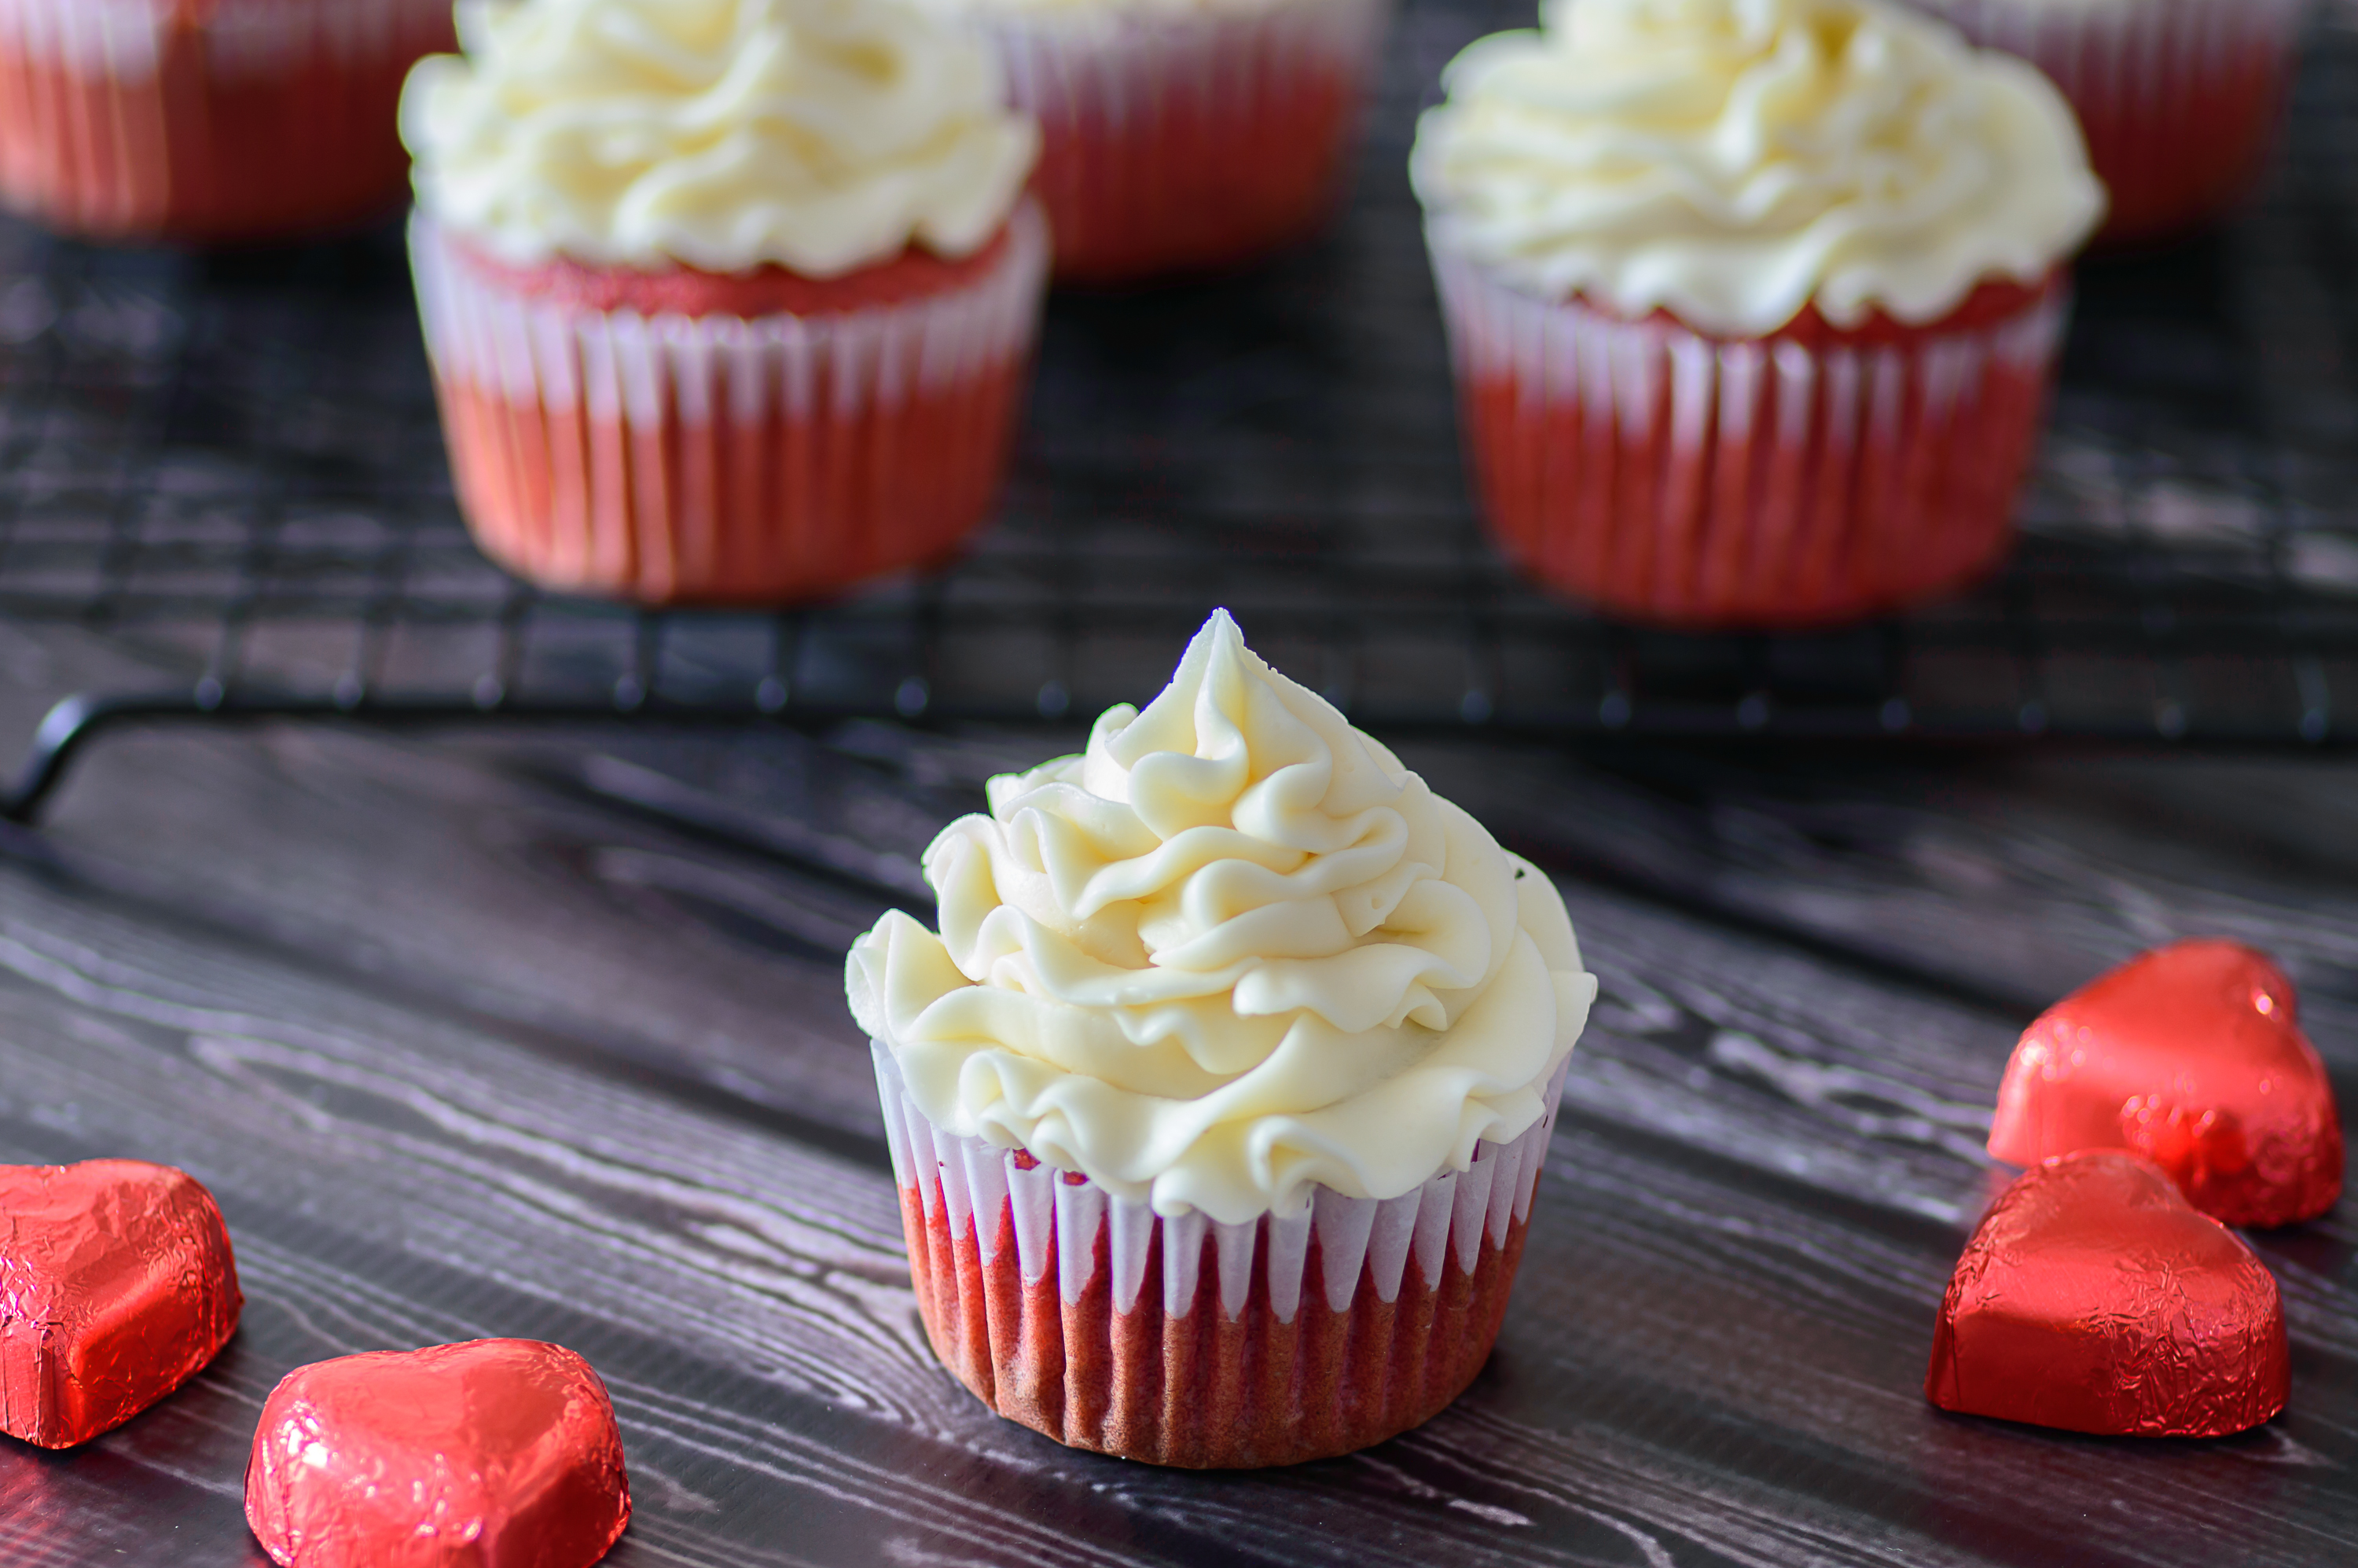 Gluten Free Red Velvet Cupcakes. I'm in love with these gorgeous cupcakes! Gluten free and can even be turned into a paleo recipe with just a few simple tweaks. What a great Valentine's Day dessert.